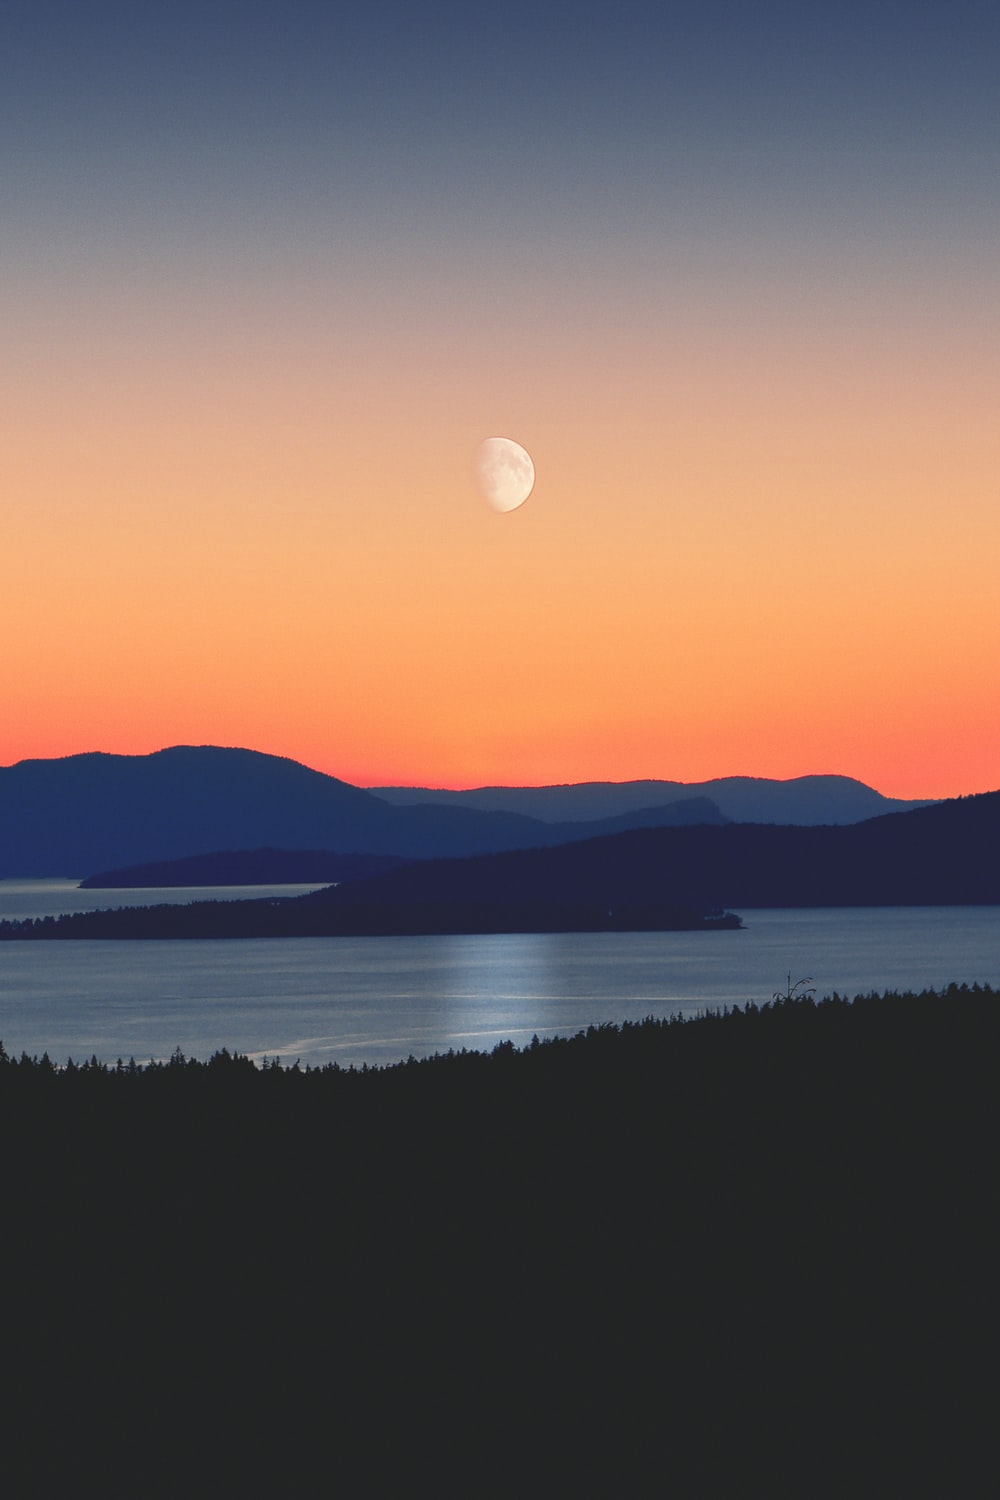 silhouette of mountains next to body of water